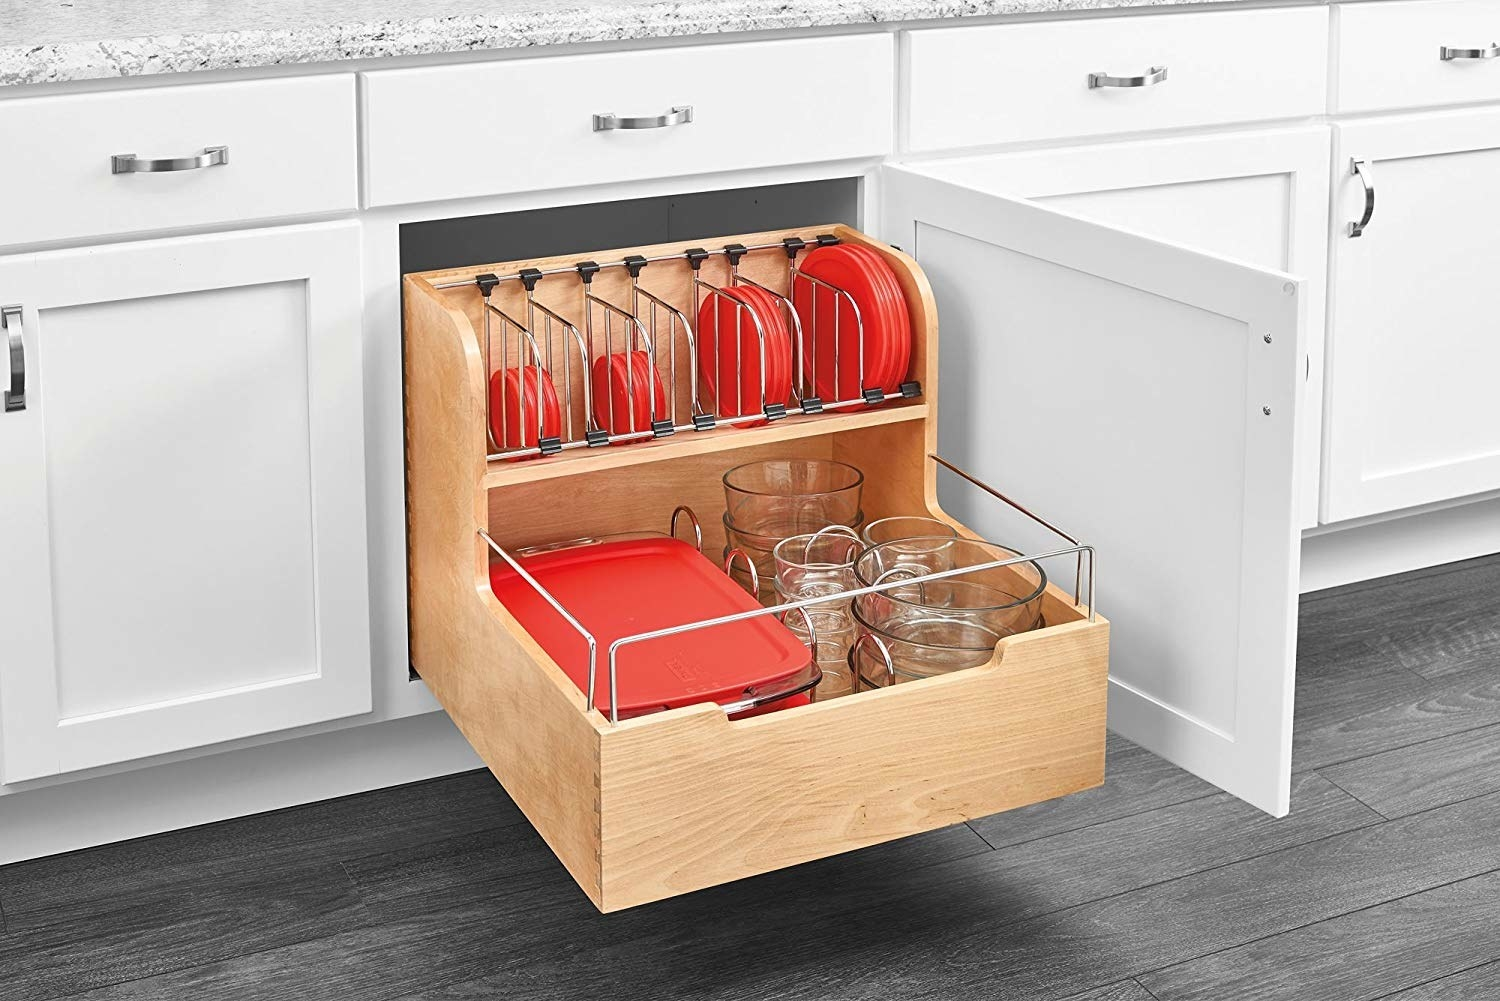 The organizer installed in a cabinet